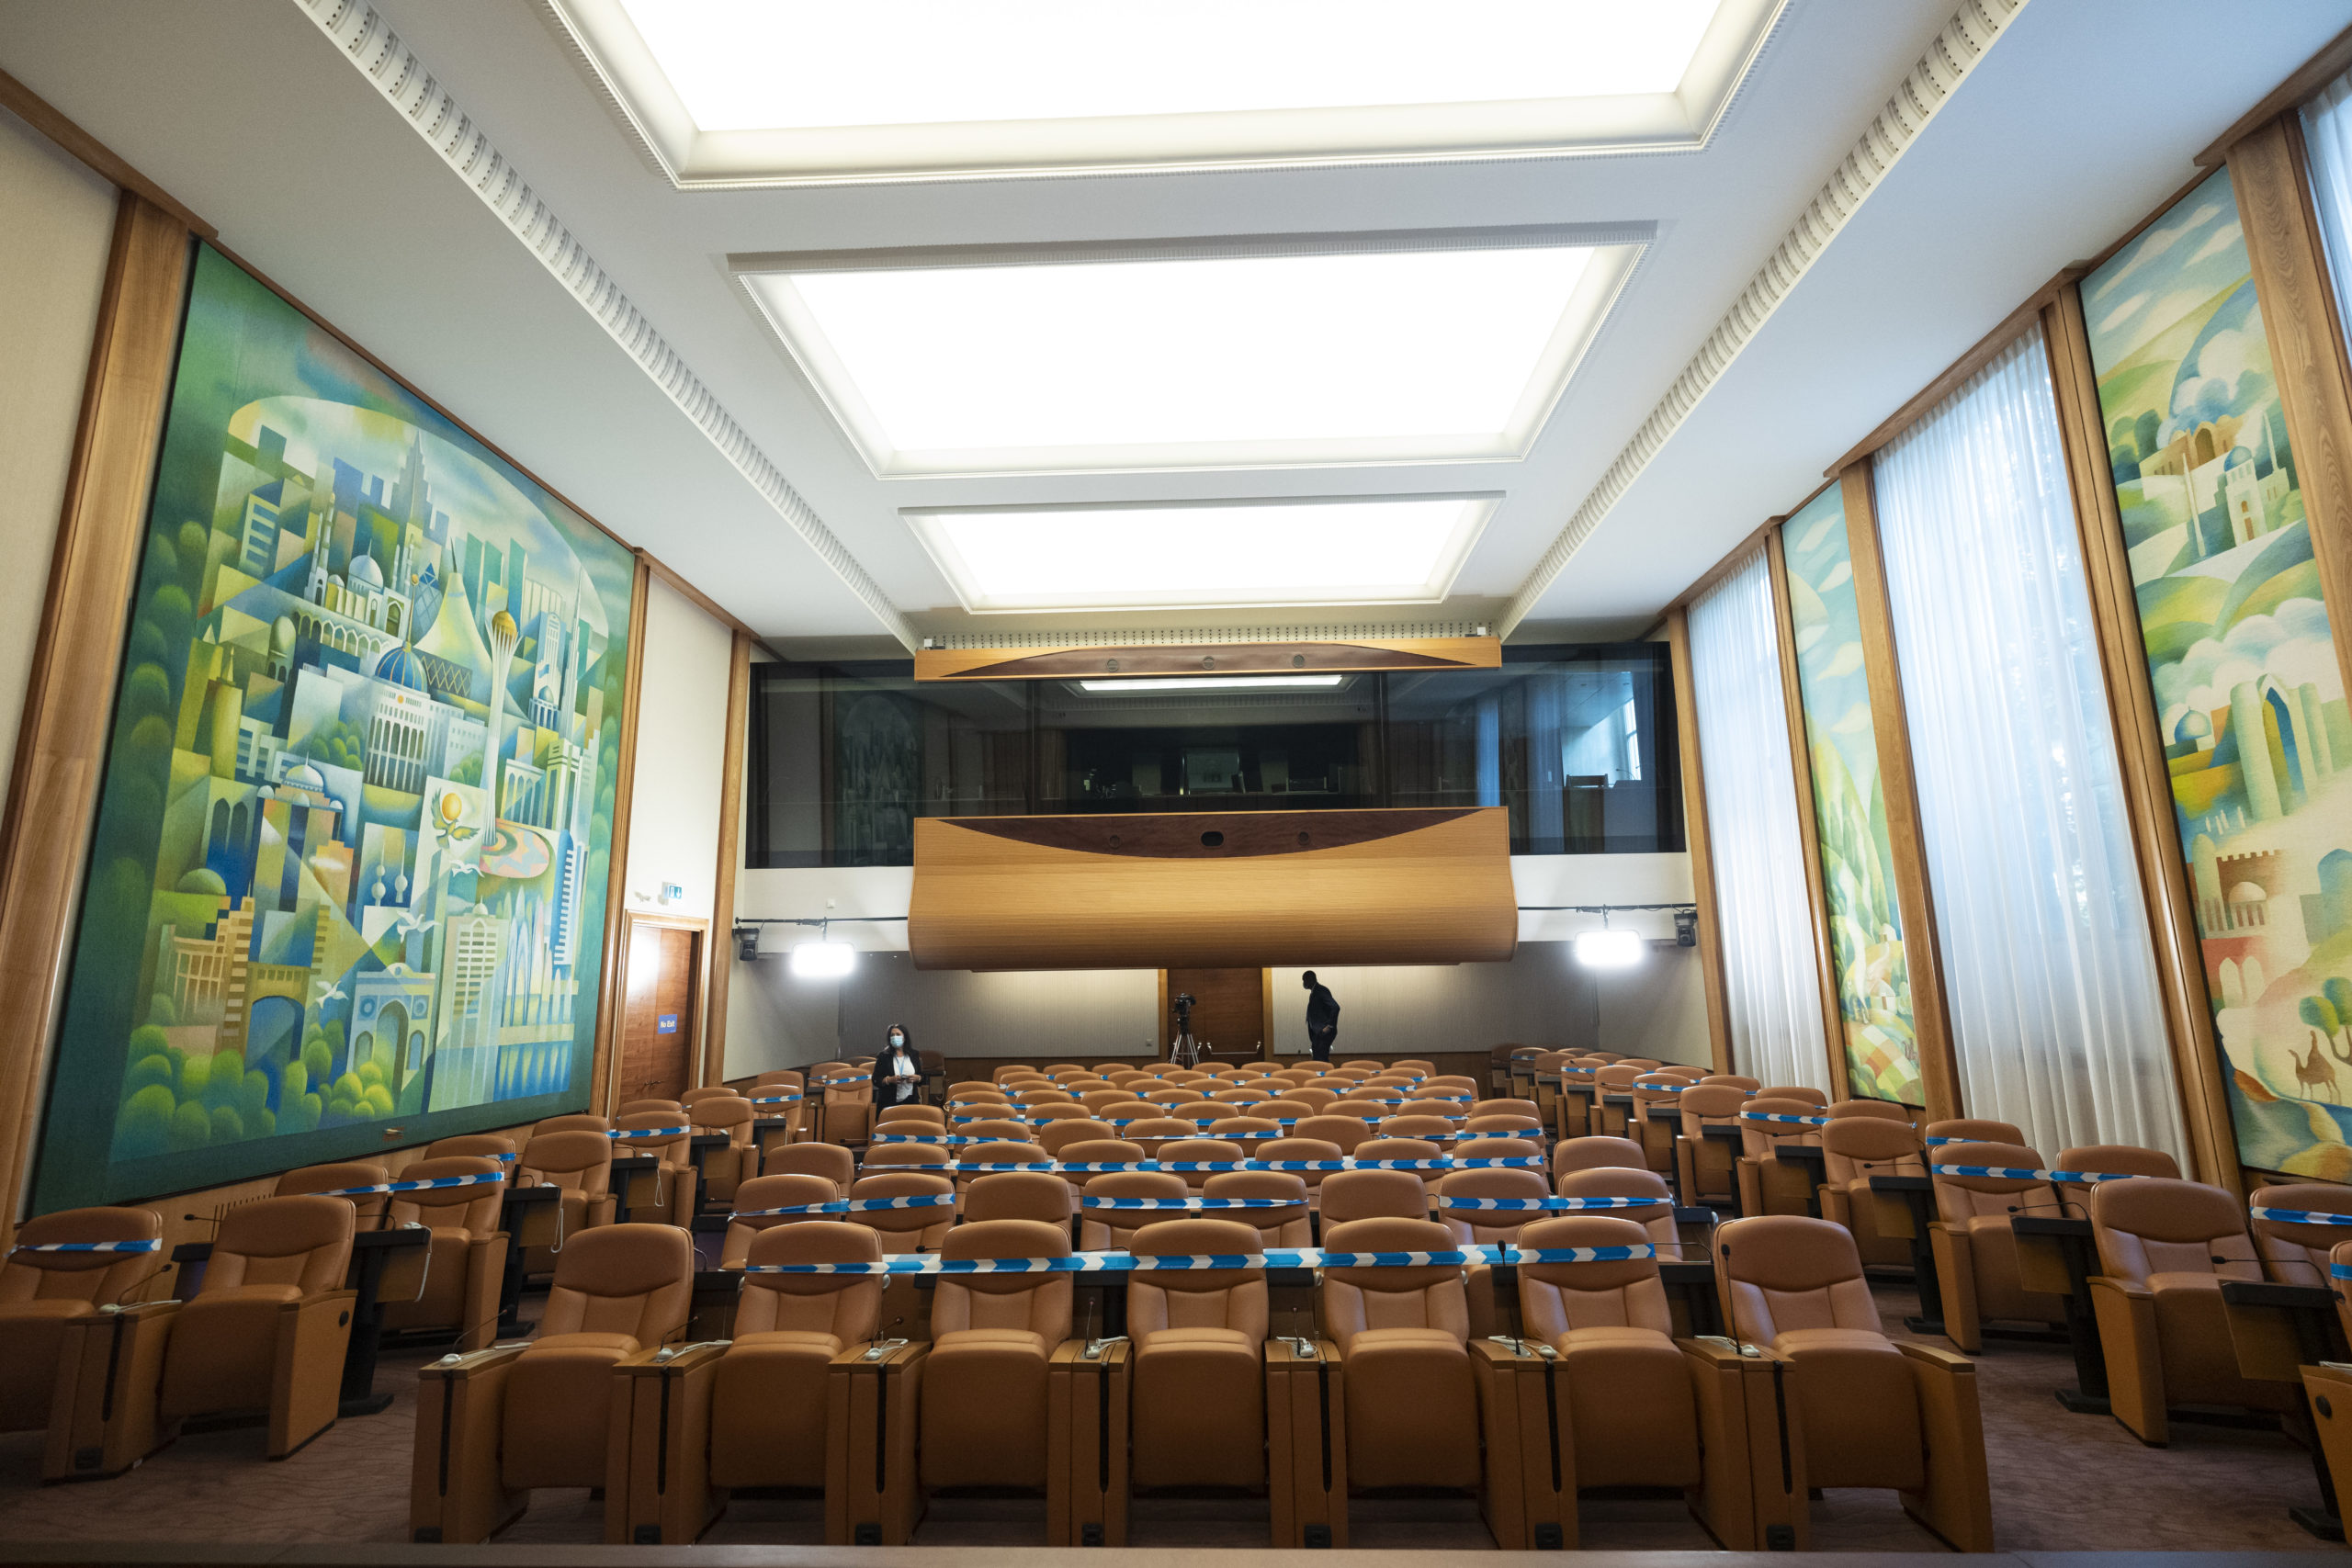 Kazakh Room (Cinema room XIV), UNOG, Palais des Nations. ©UN Photo / Jean Marc Ferré